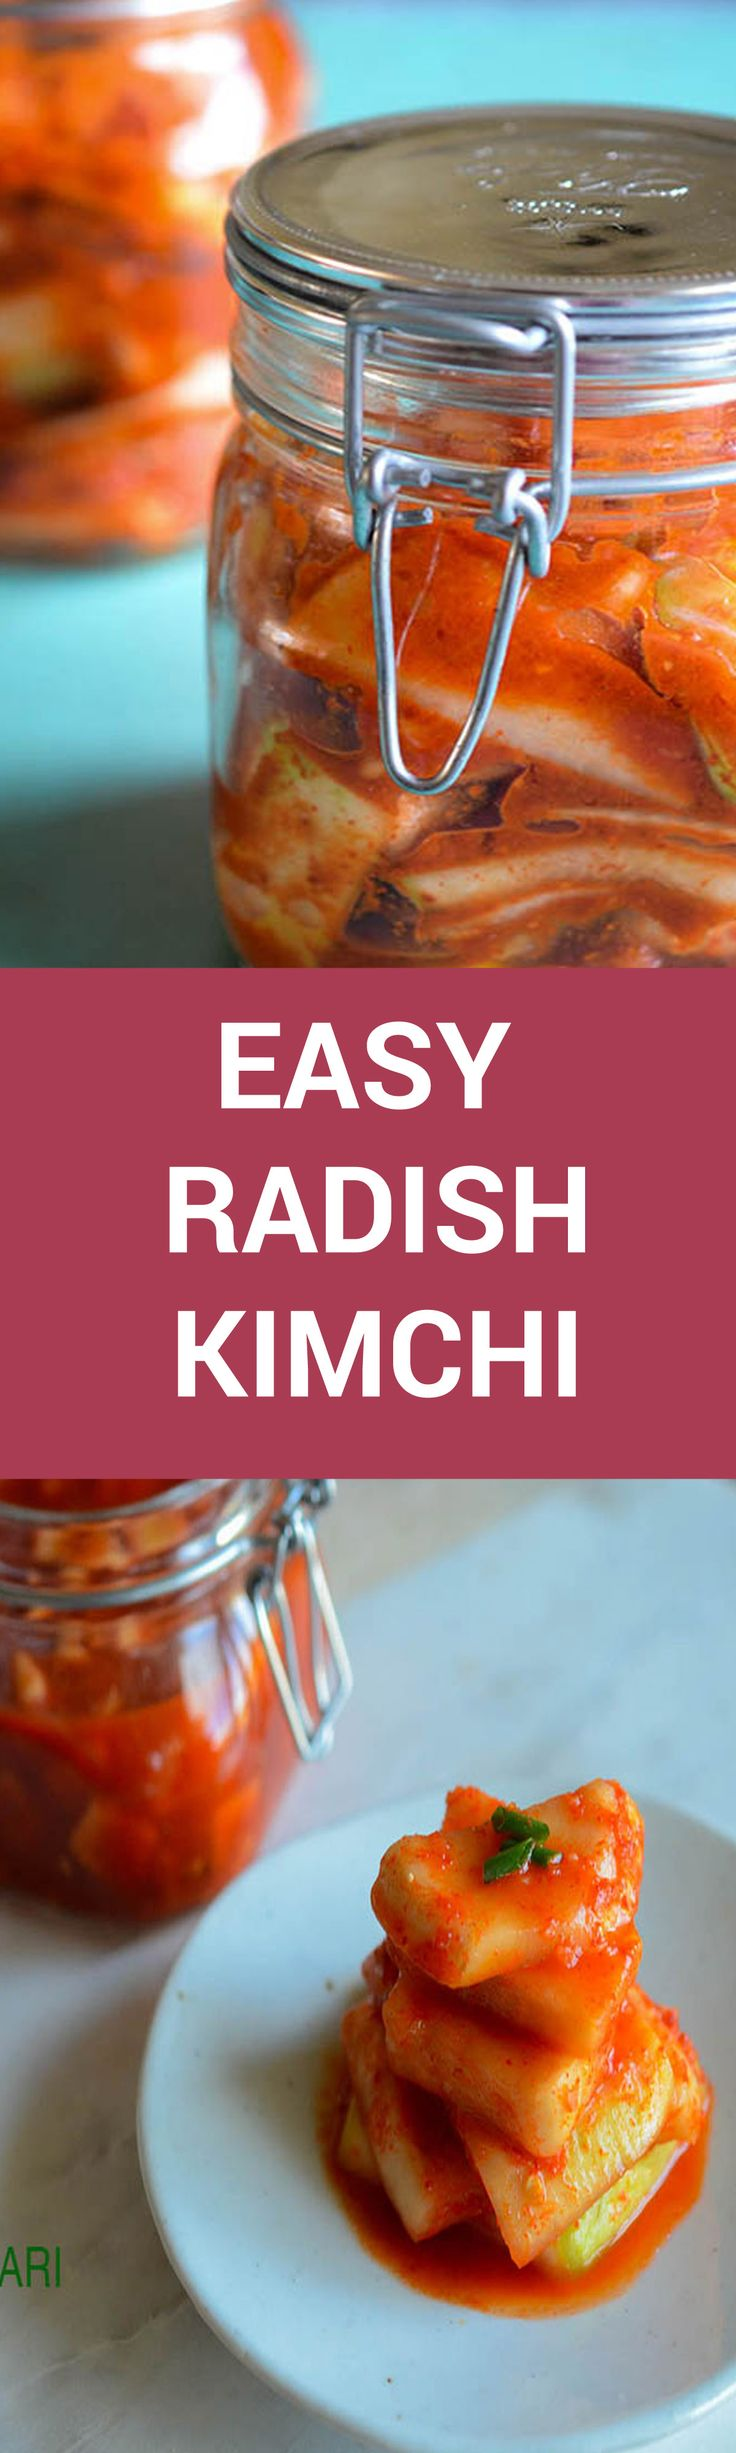 Why can't making Kimchi be quick and easy? Why does making Kimchi ...